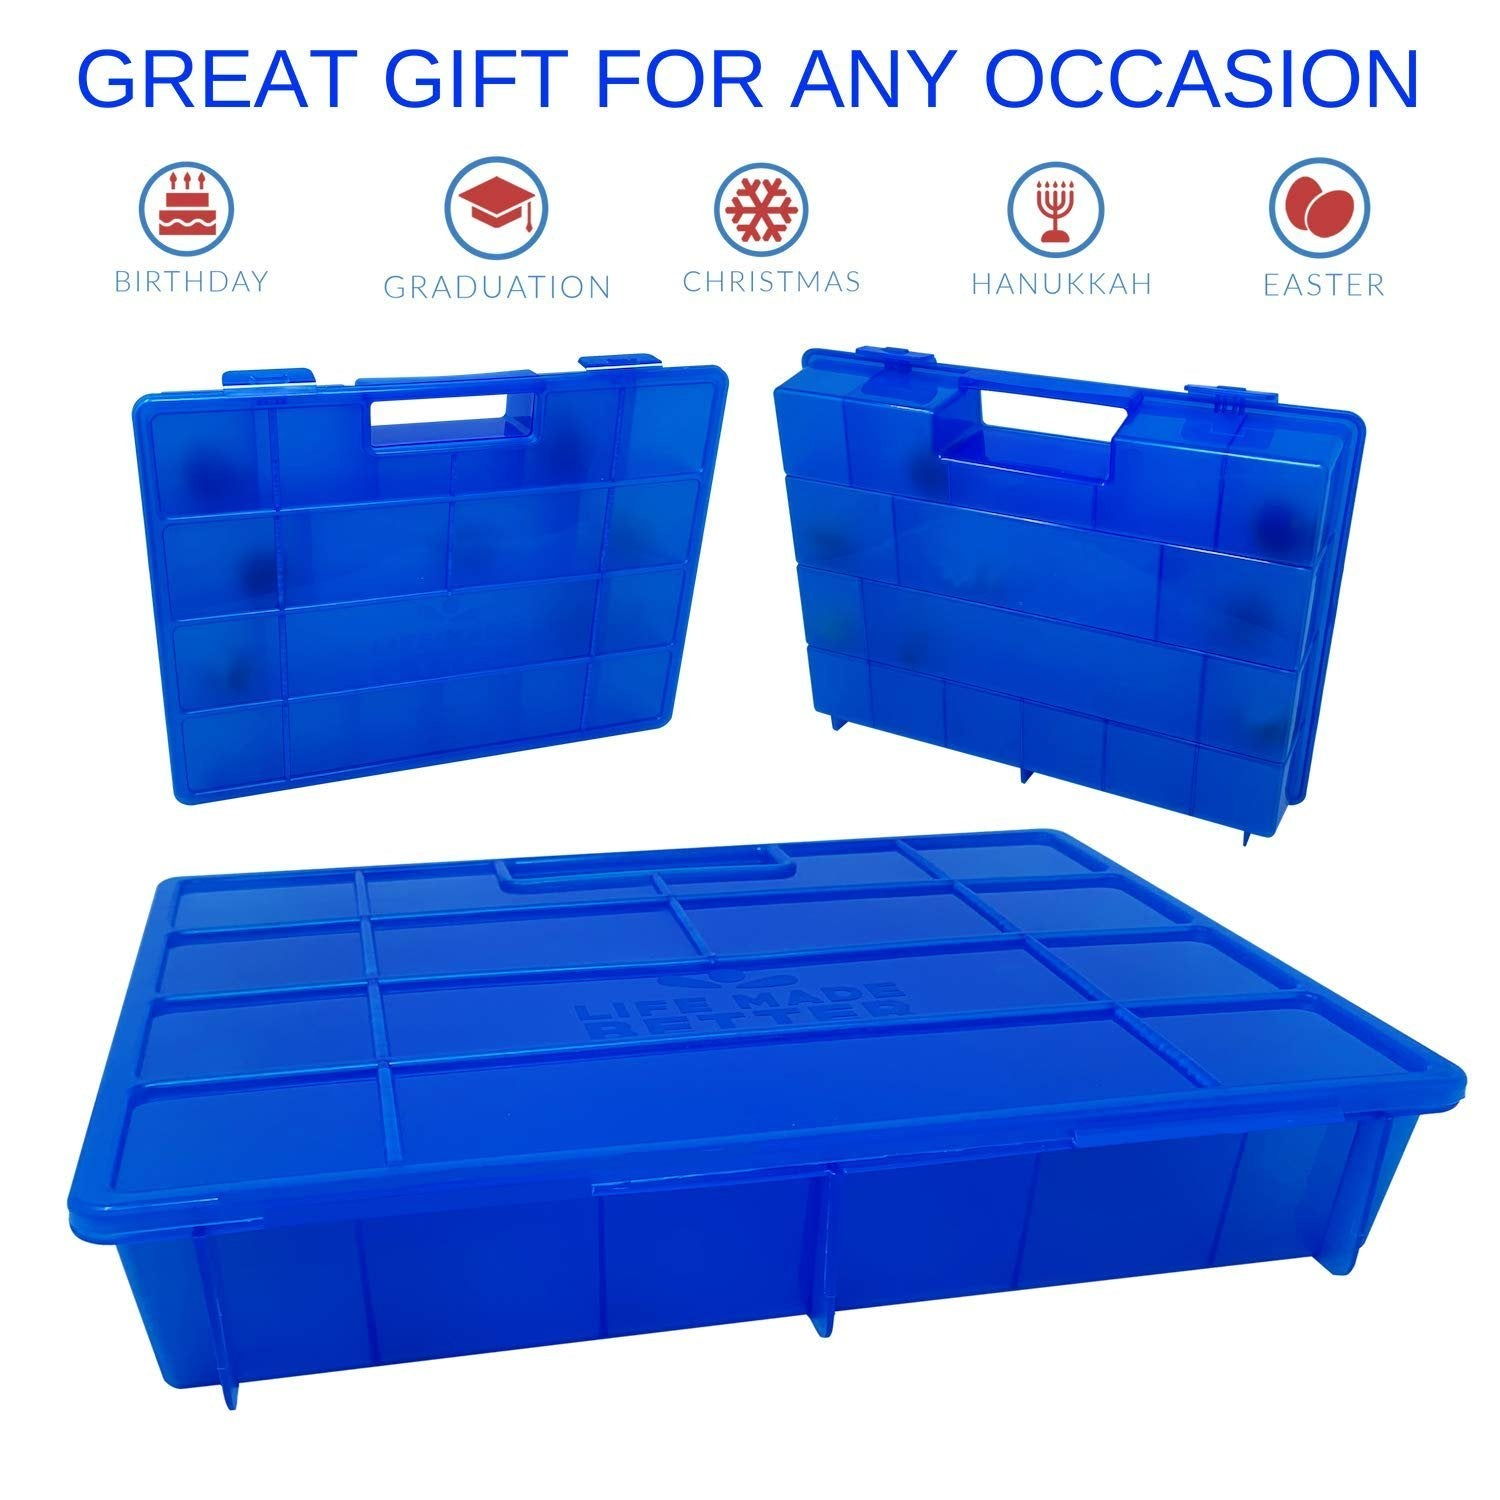 Life Made Better Durable /& Kid Friendly Blue Toy Organizer Case for Dolls and Accessories Sweet Gift Idea for Big Sister /& Lil Sister